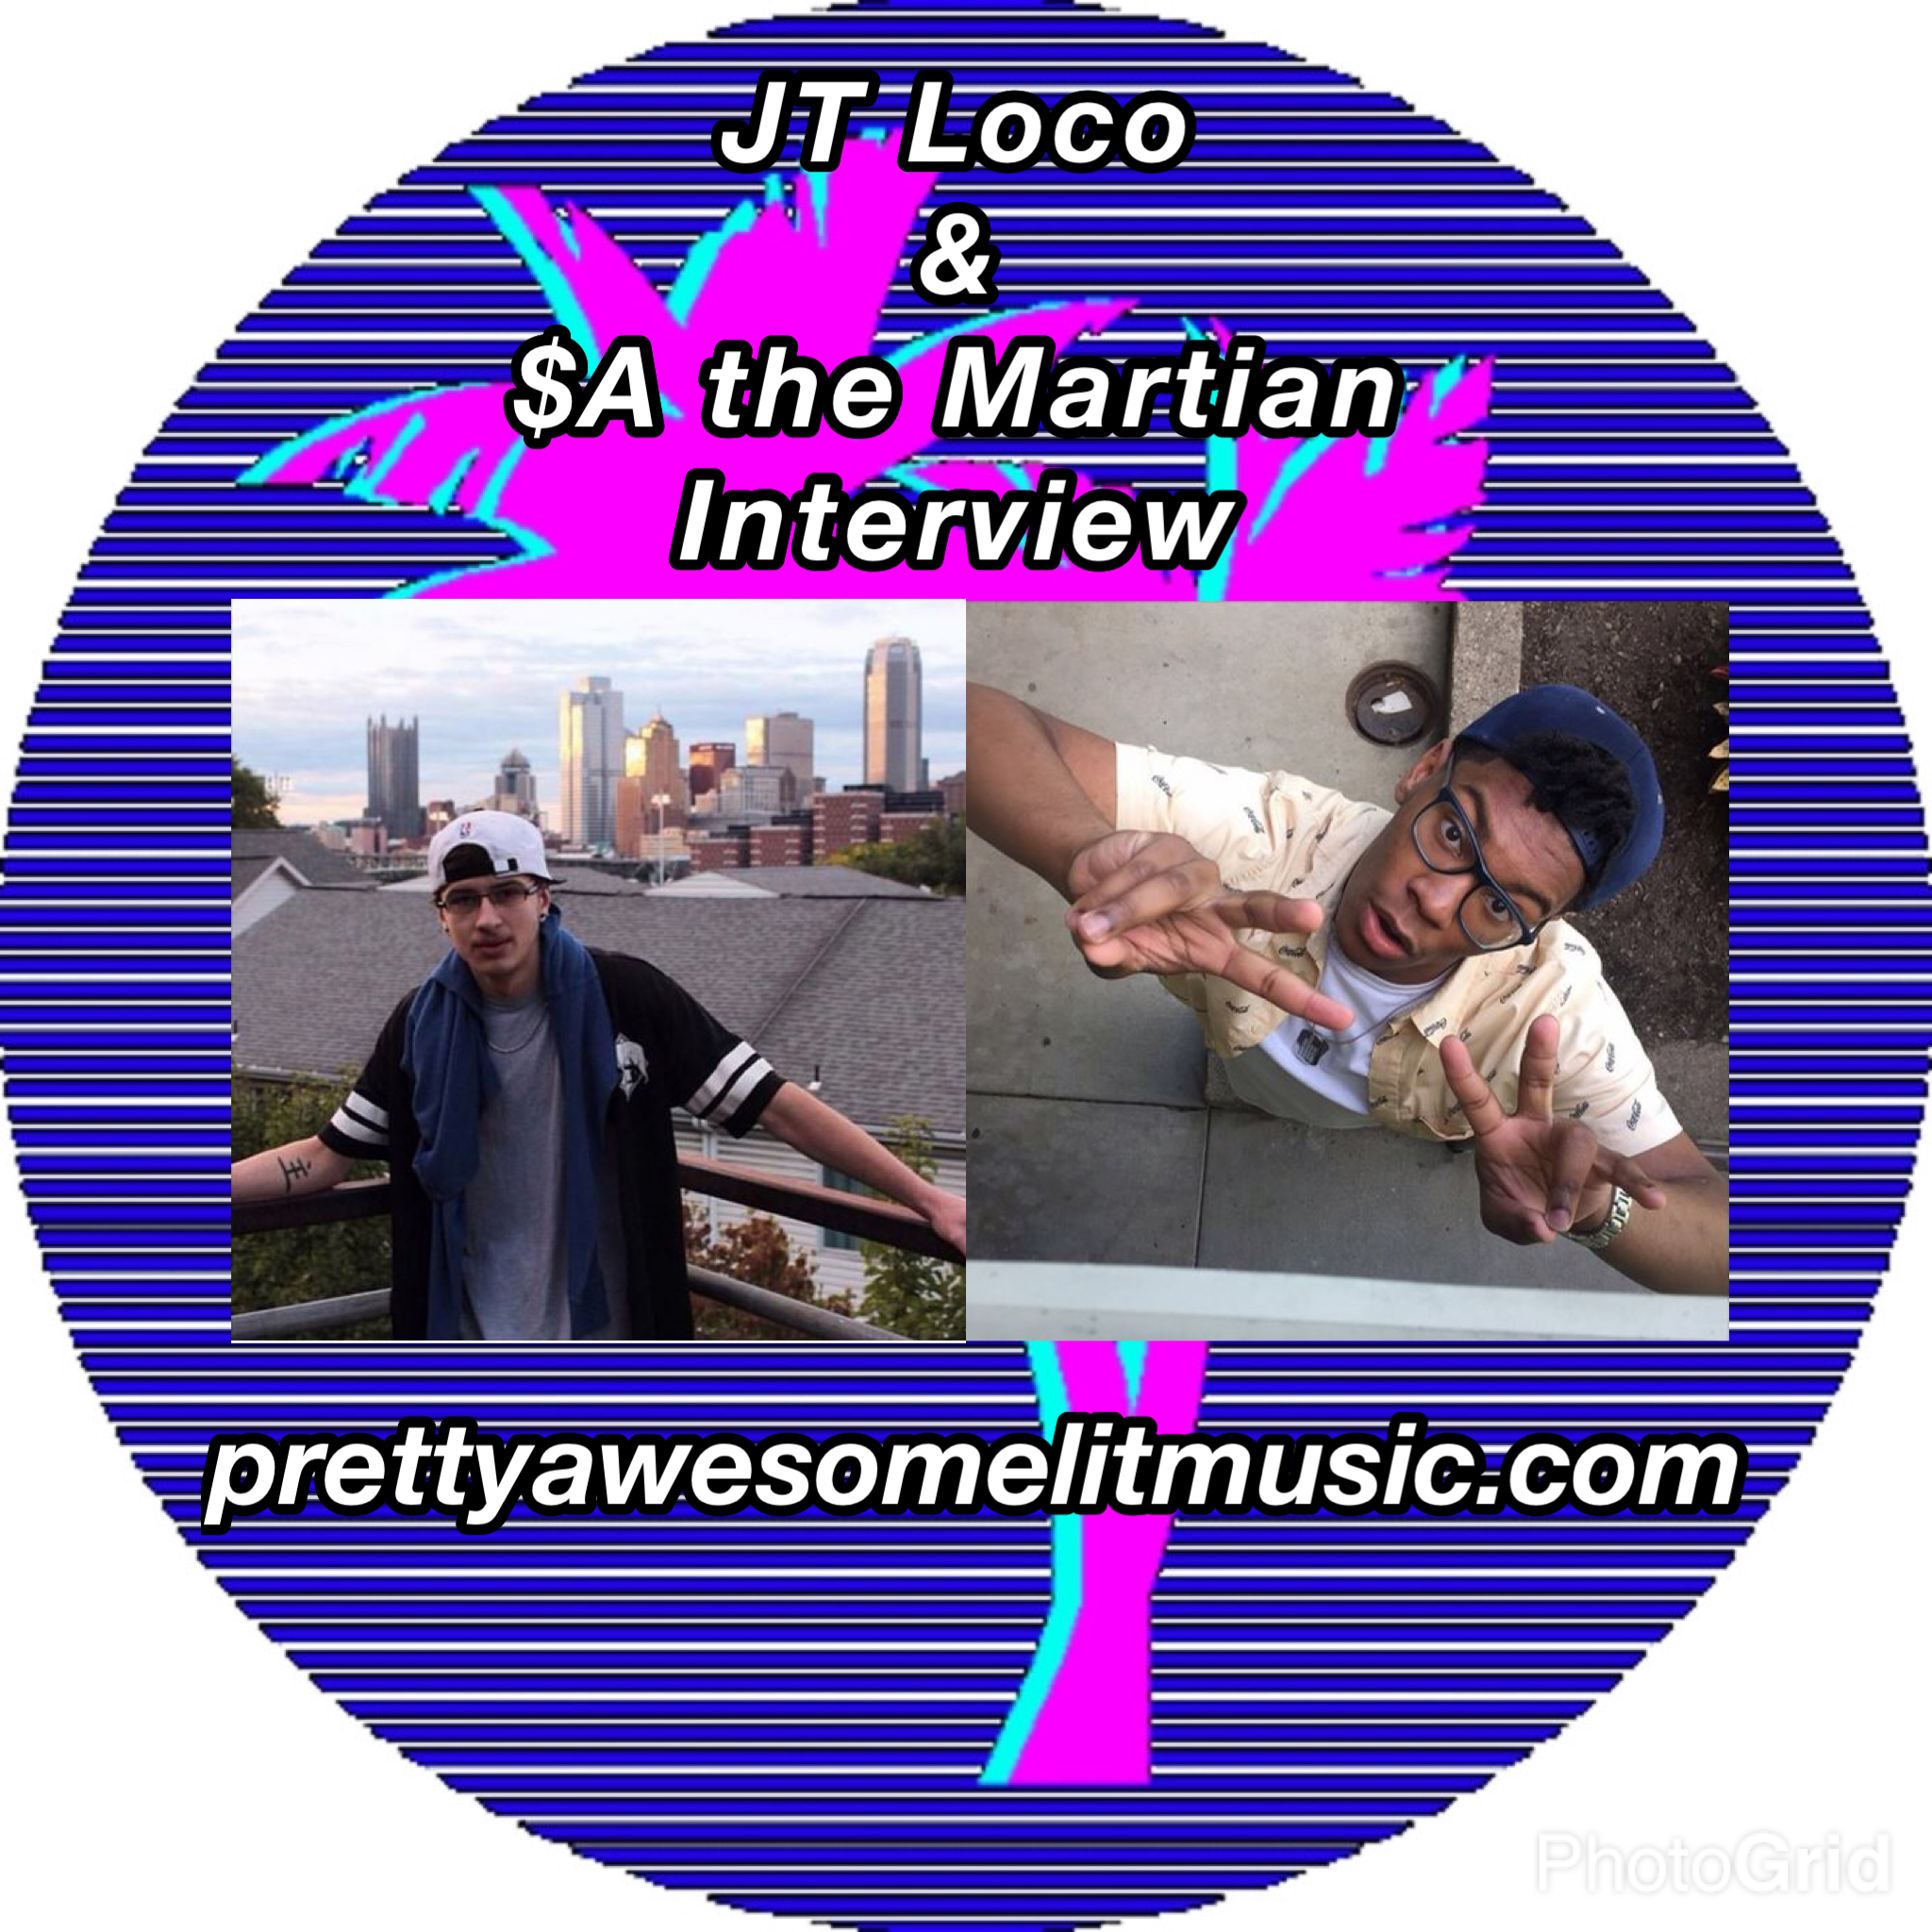 jt-loco-a-the-martian